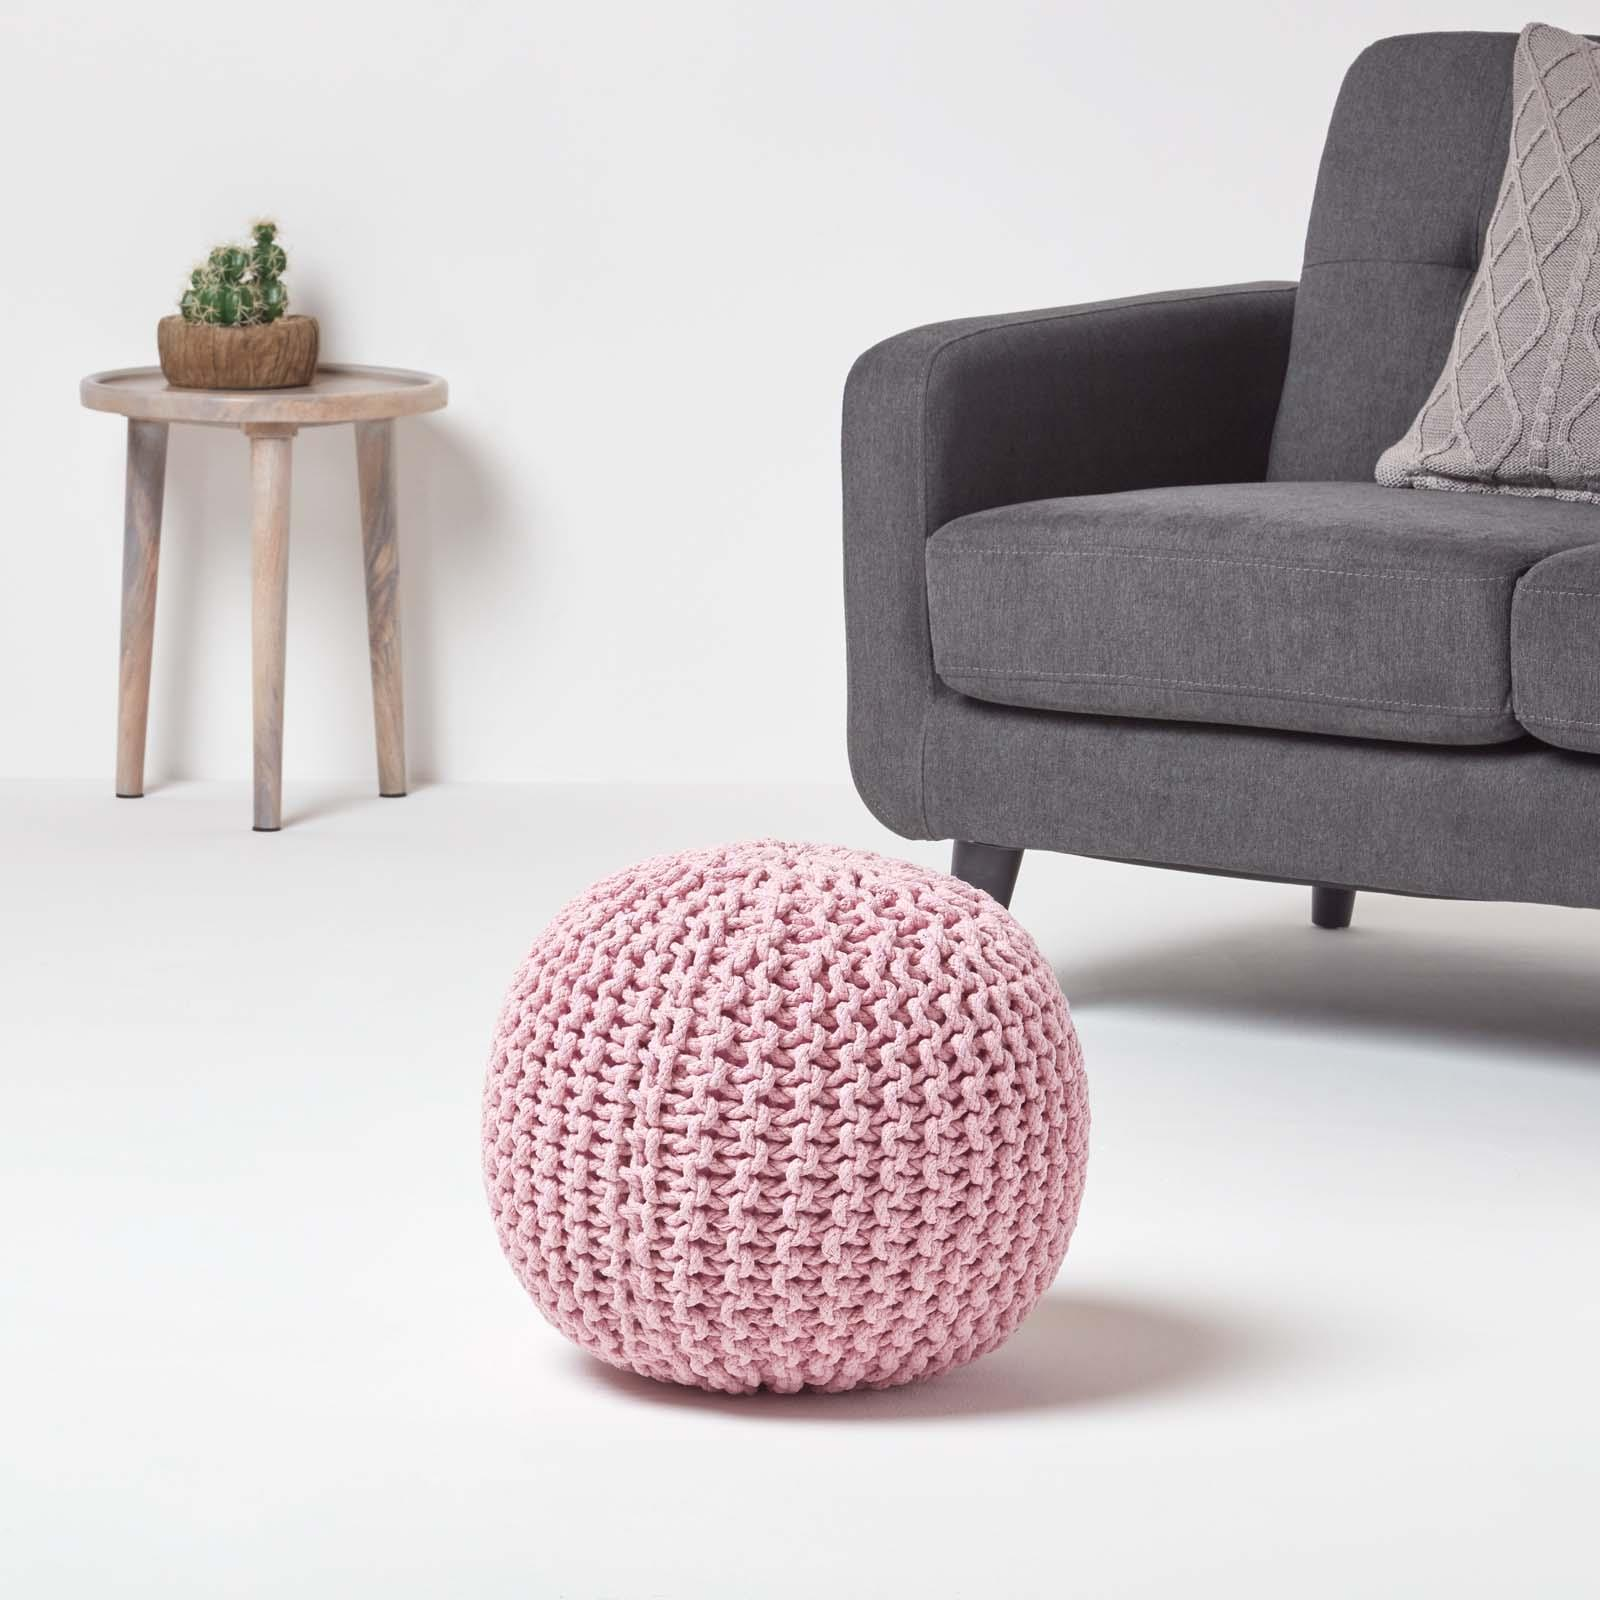 Hand-Knitted-100-Cotton-Pouffes-Round-Sphere-Or-Cube-Square-Chunky-Footstools thumbnail 141